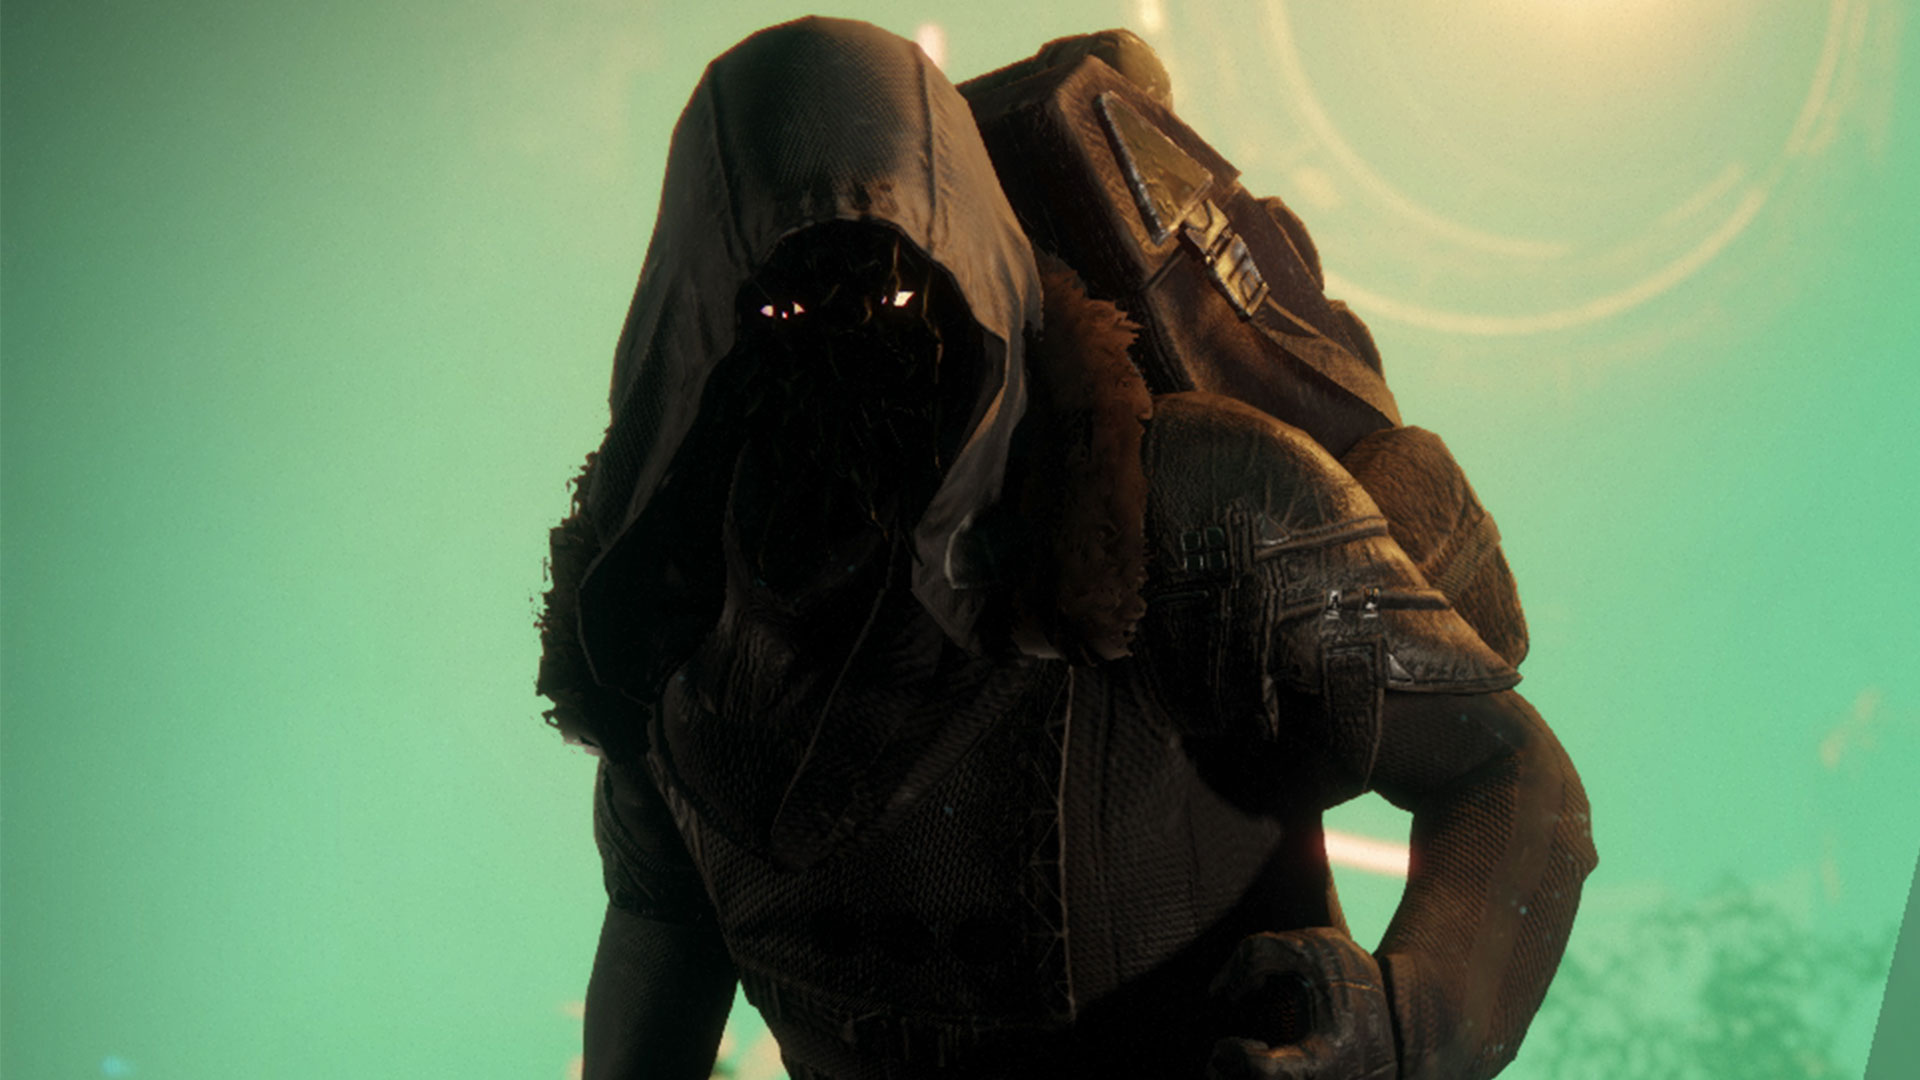 Destiny 2 Xur location and items, Oct. 11-14